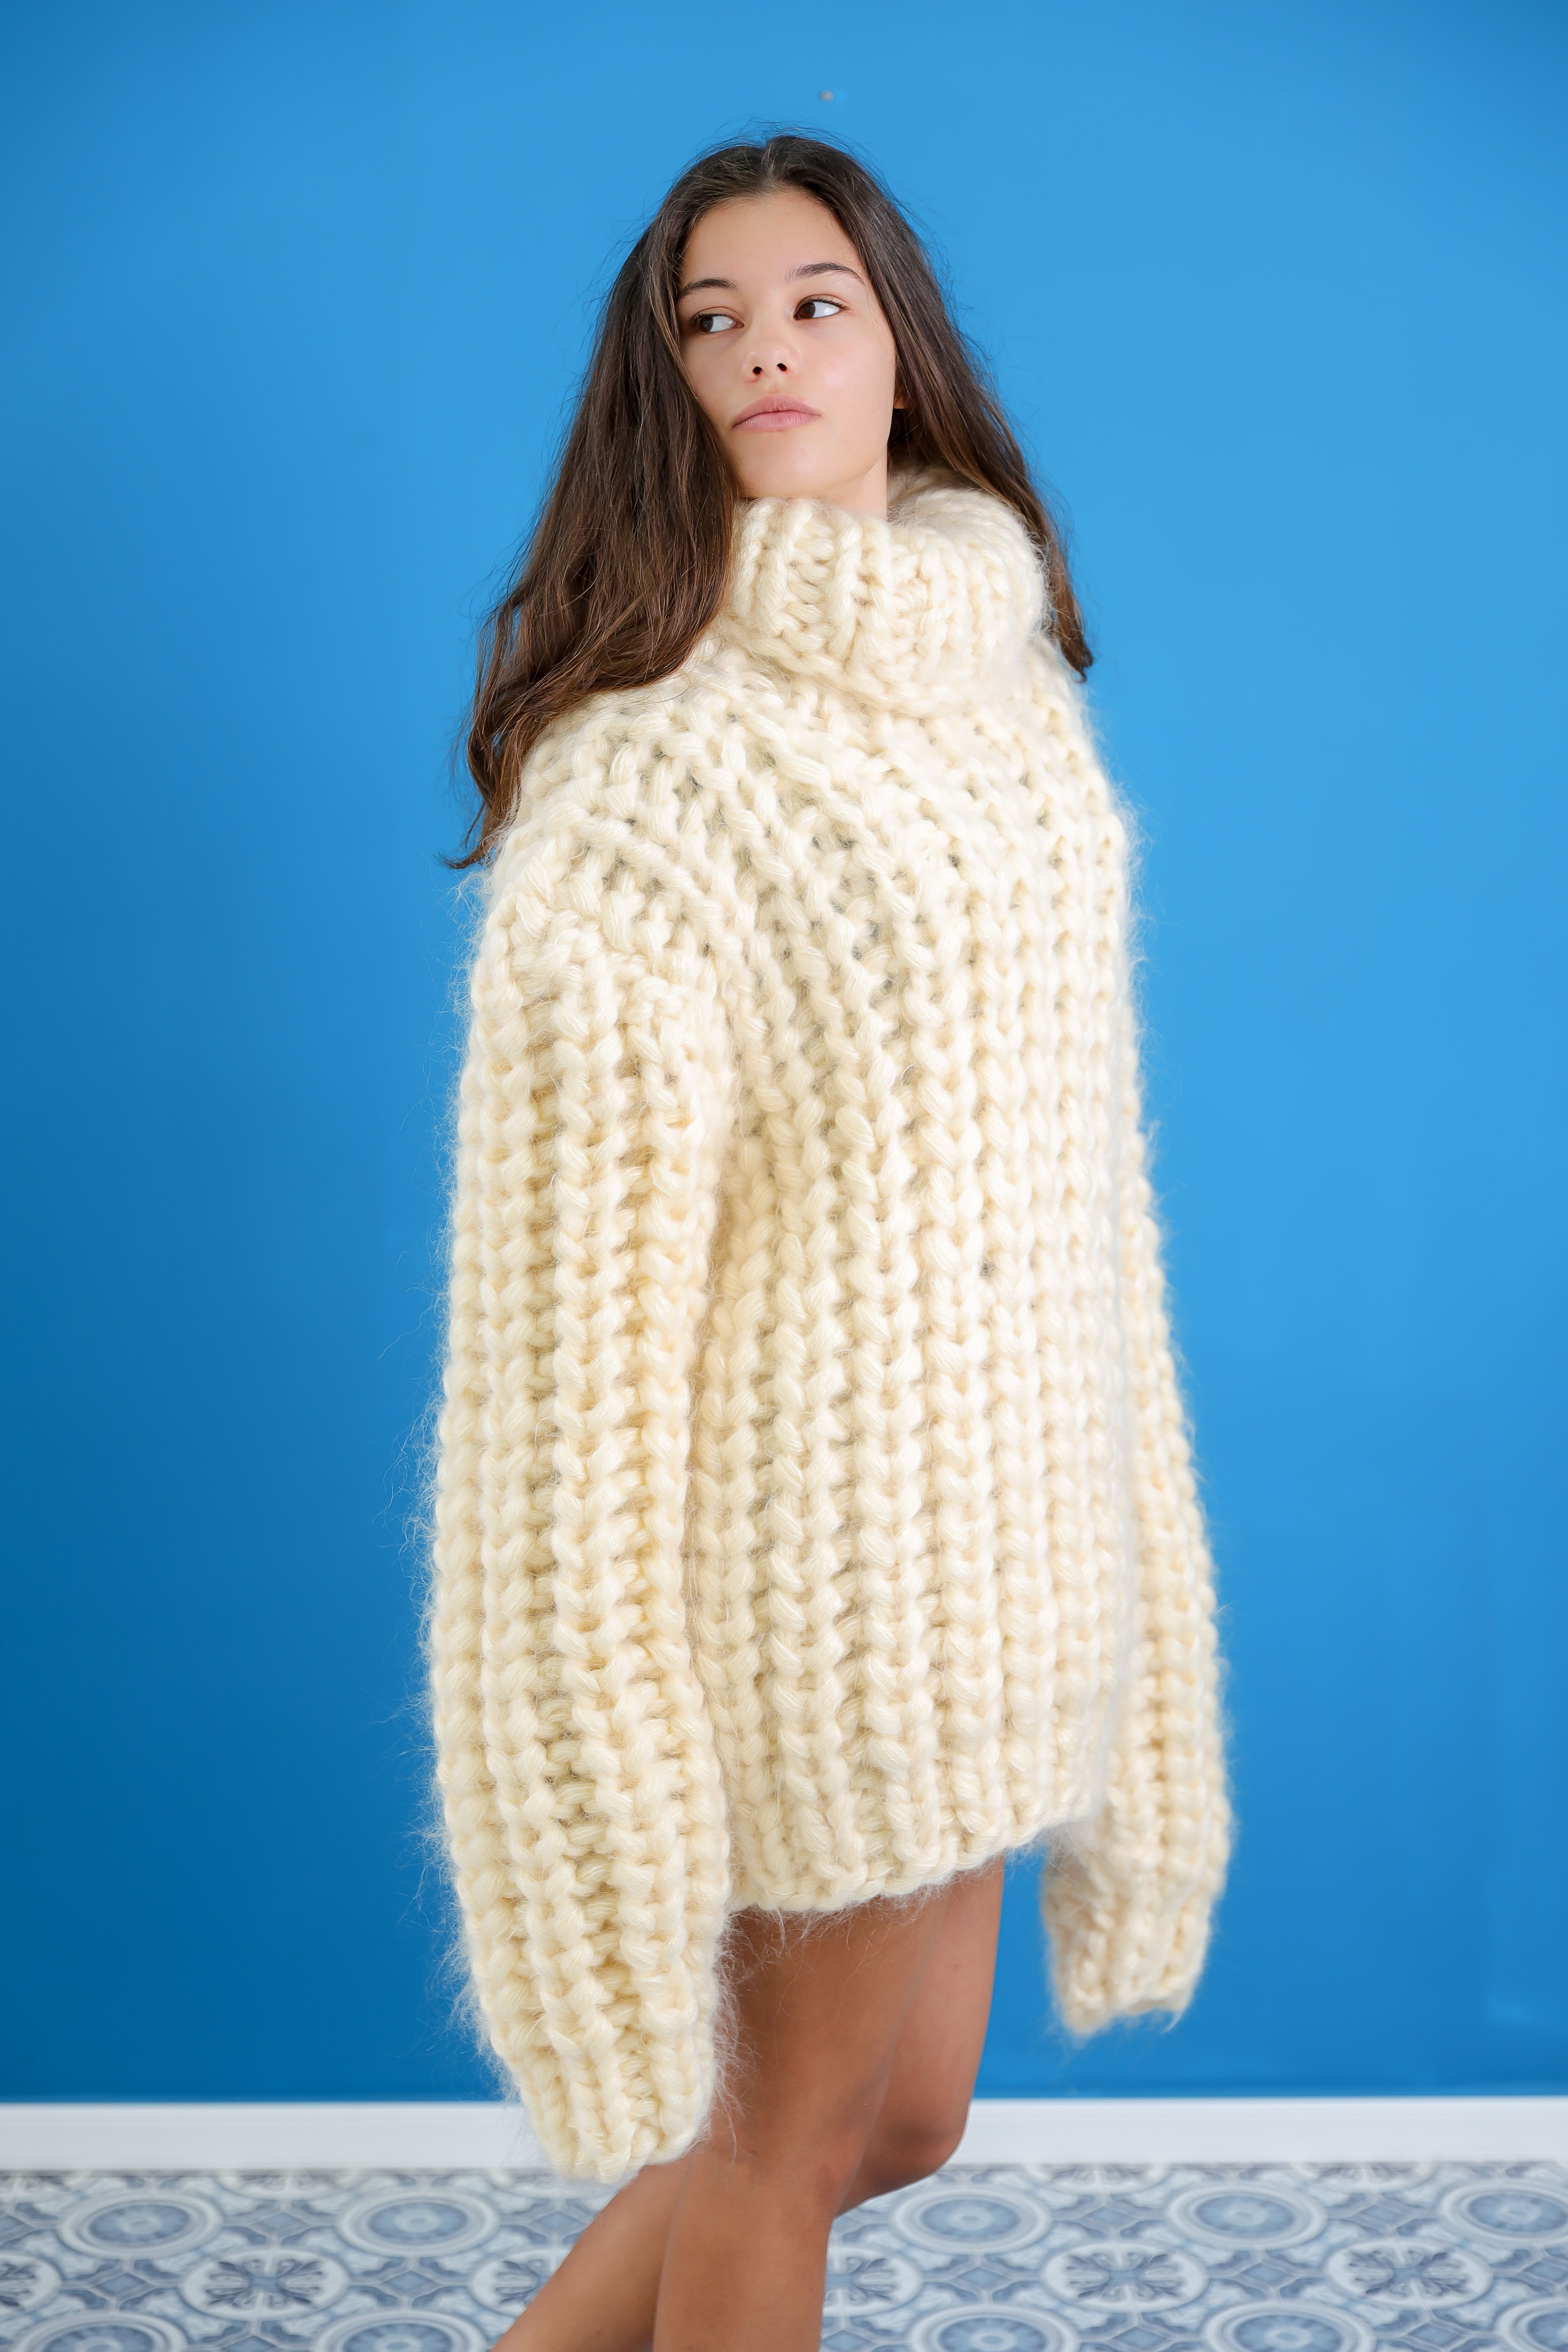 15 strands 3.5 kg Mohair Sweater ,Cream Mohair Knit Sweater,Sexy mohair turtleneck sweater,